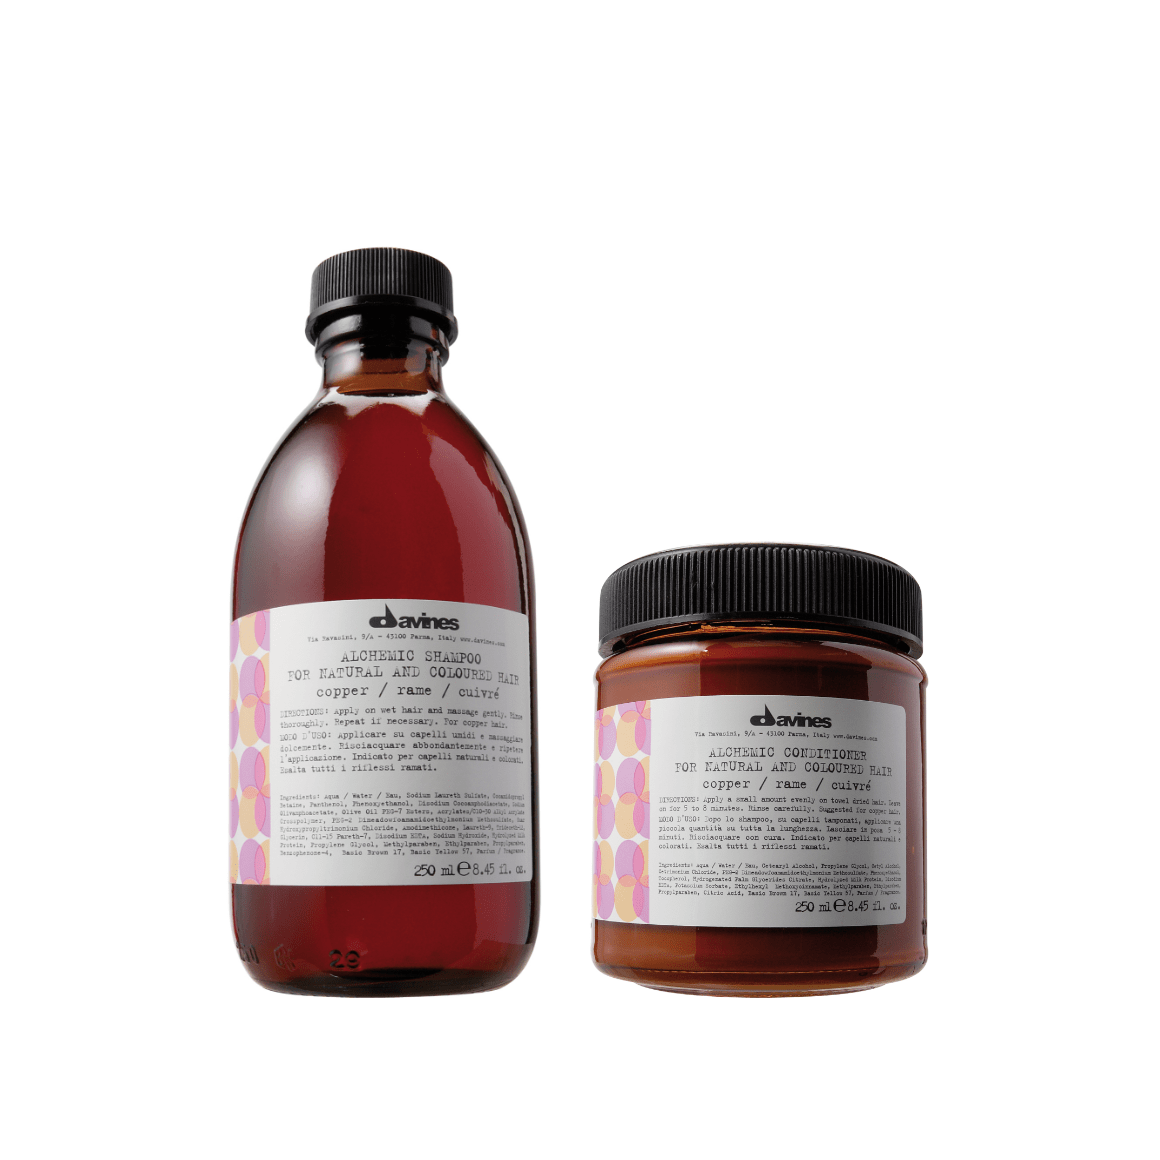 Davines Alchemic Shampoo & Conditioner